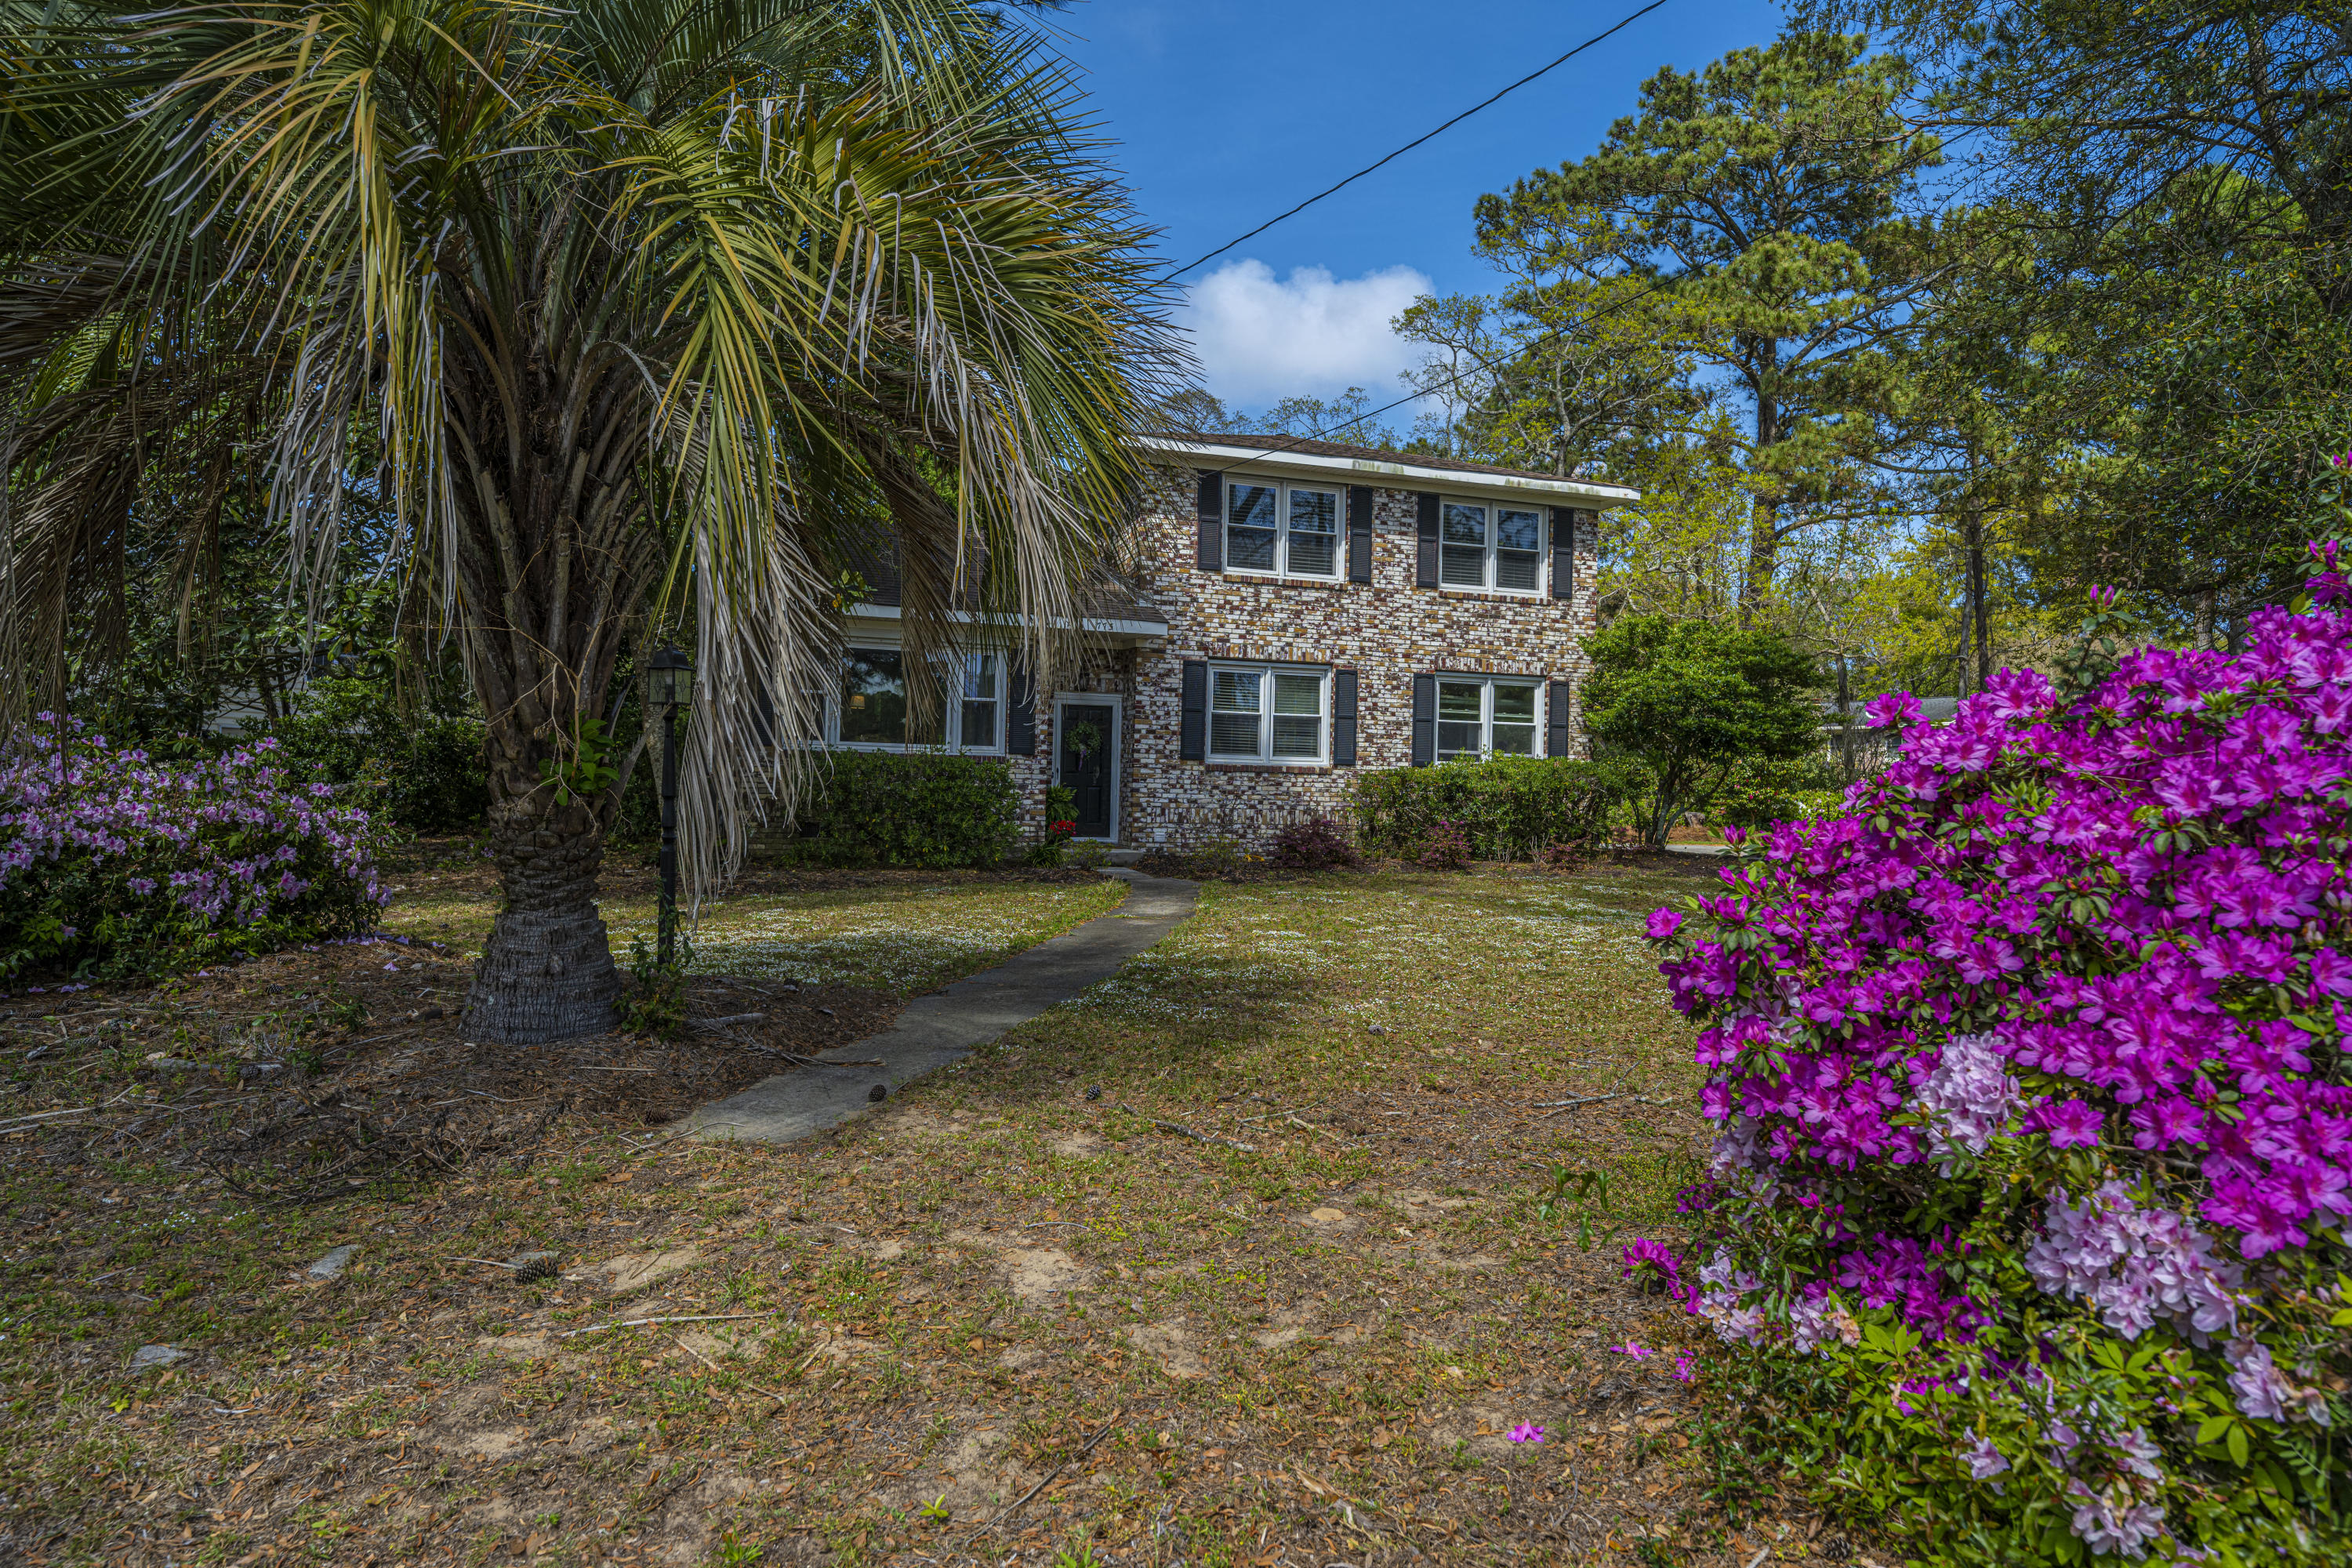 Stiles Point Homes For Sale - 775 Sparrow, Charleston, SC - 29